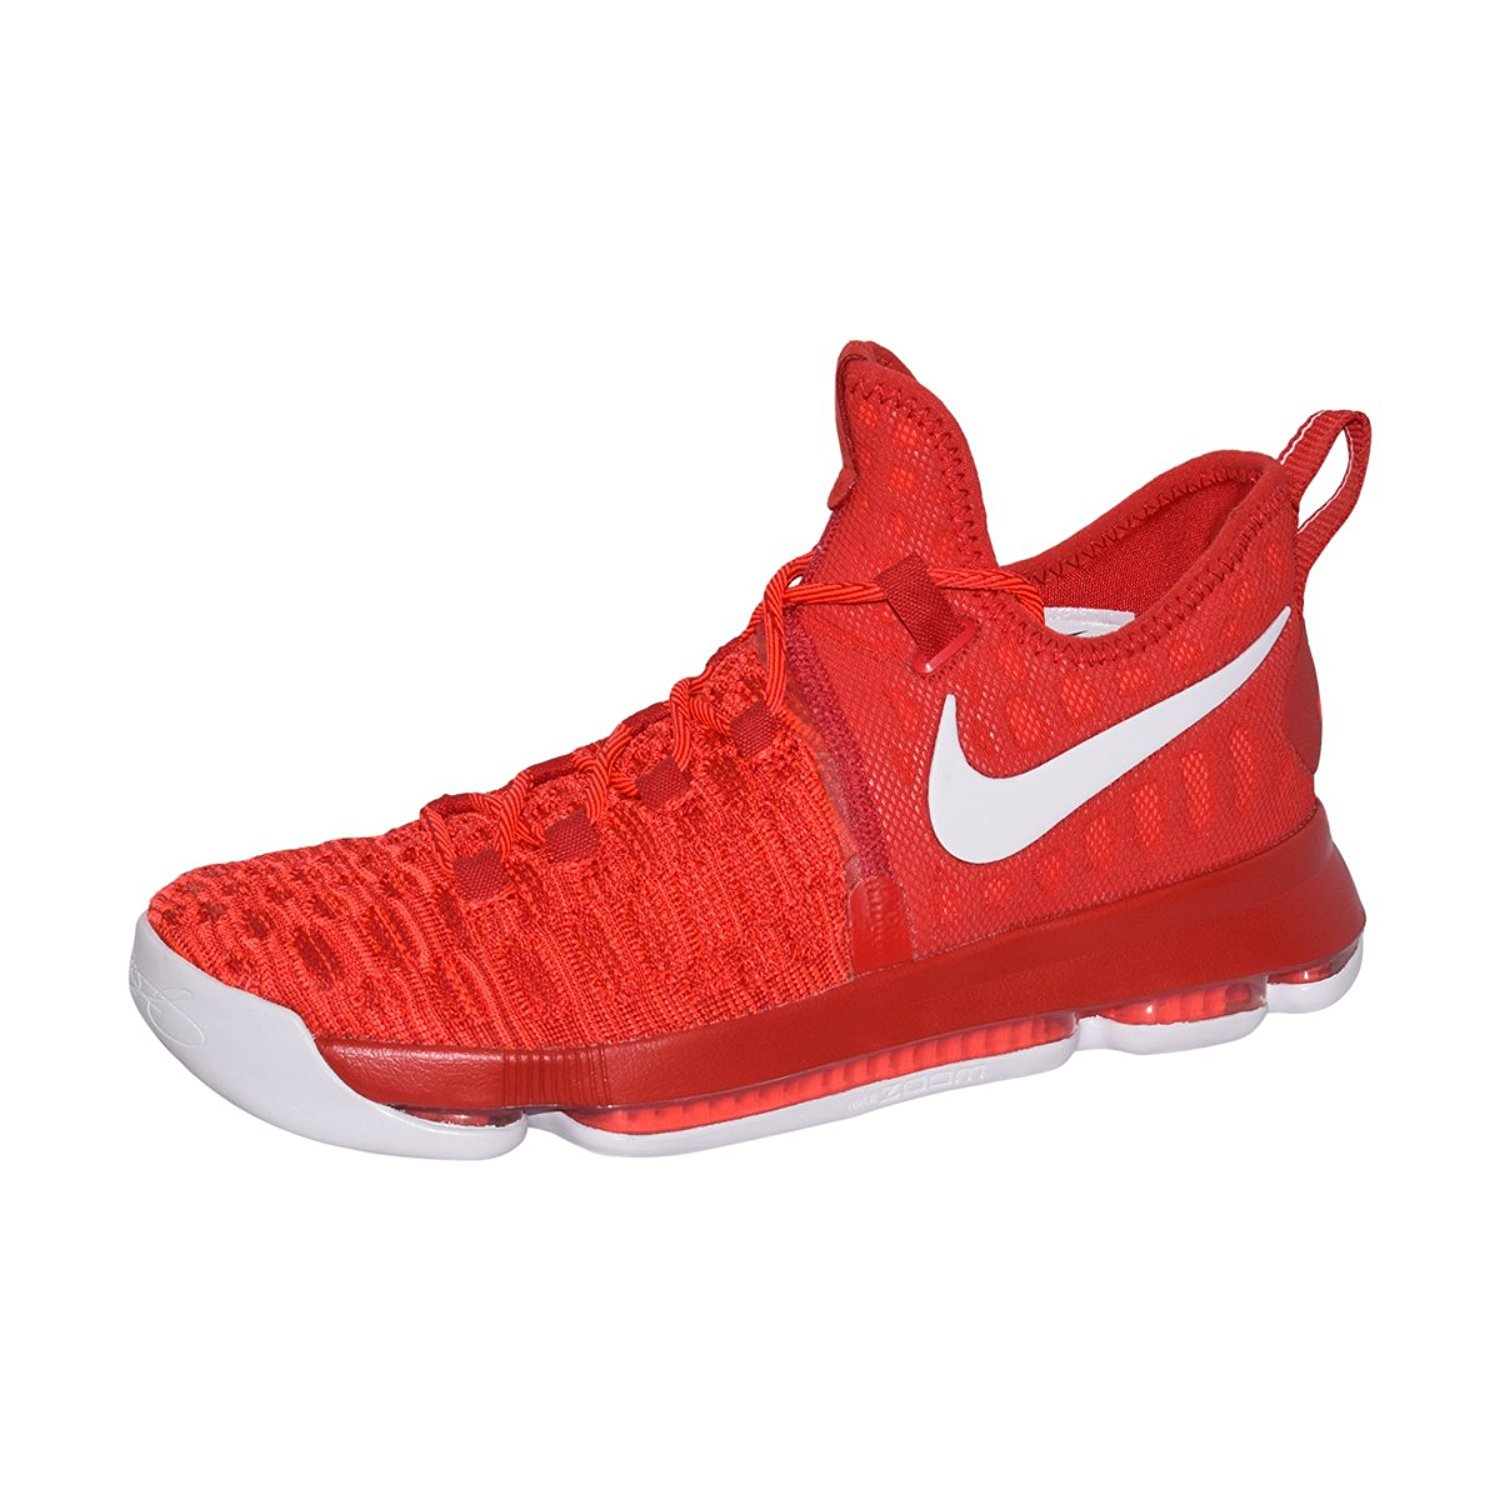 NIKE Zoom KD 9 Men's Basketball Shoes (11, University RedWhite)